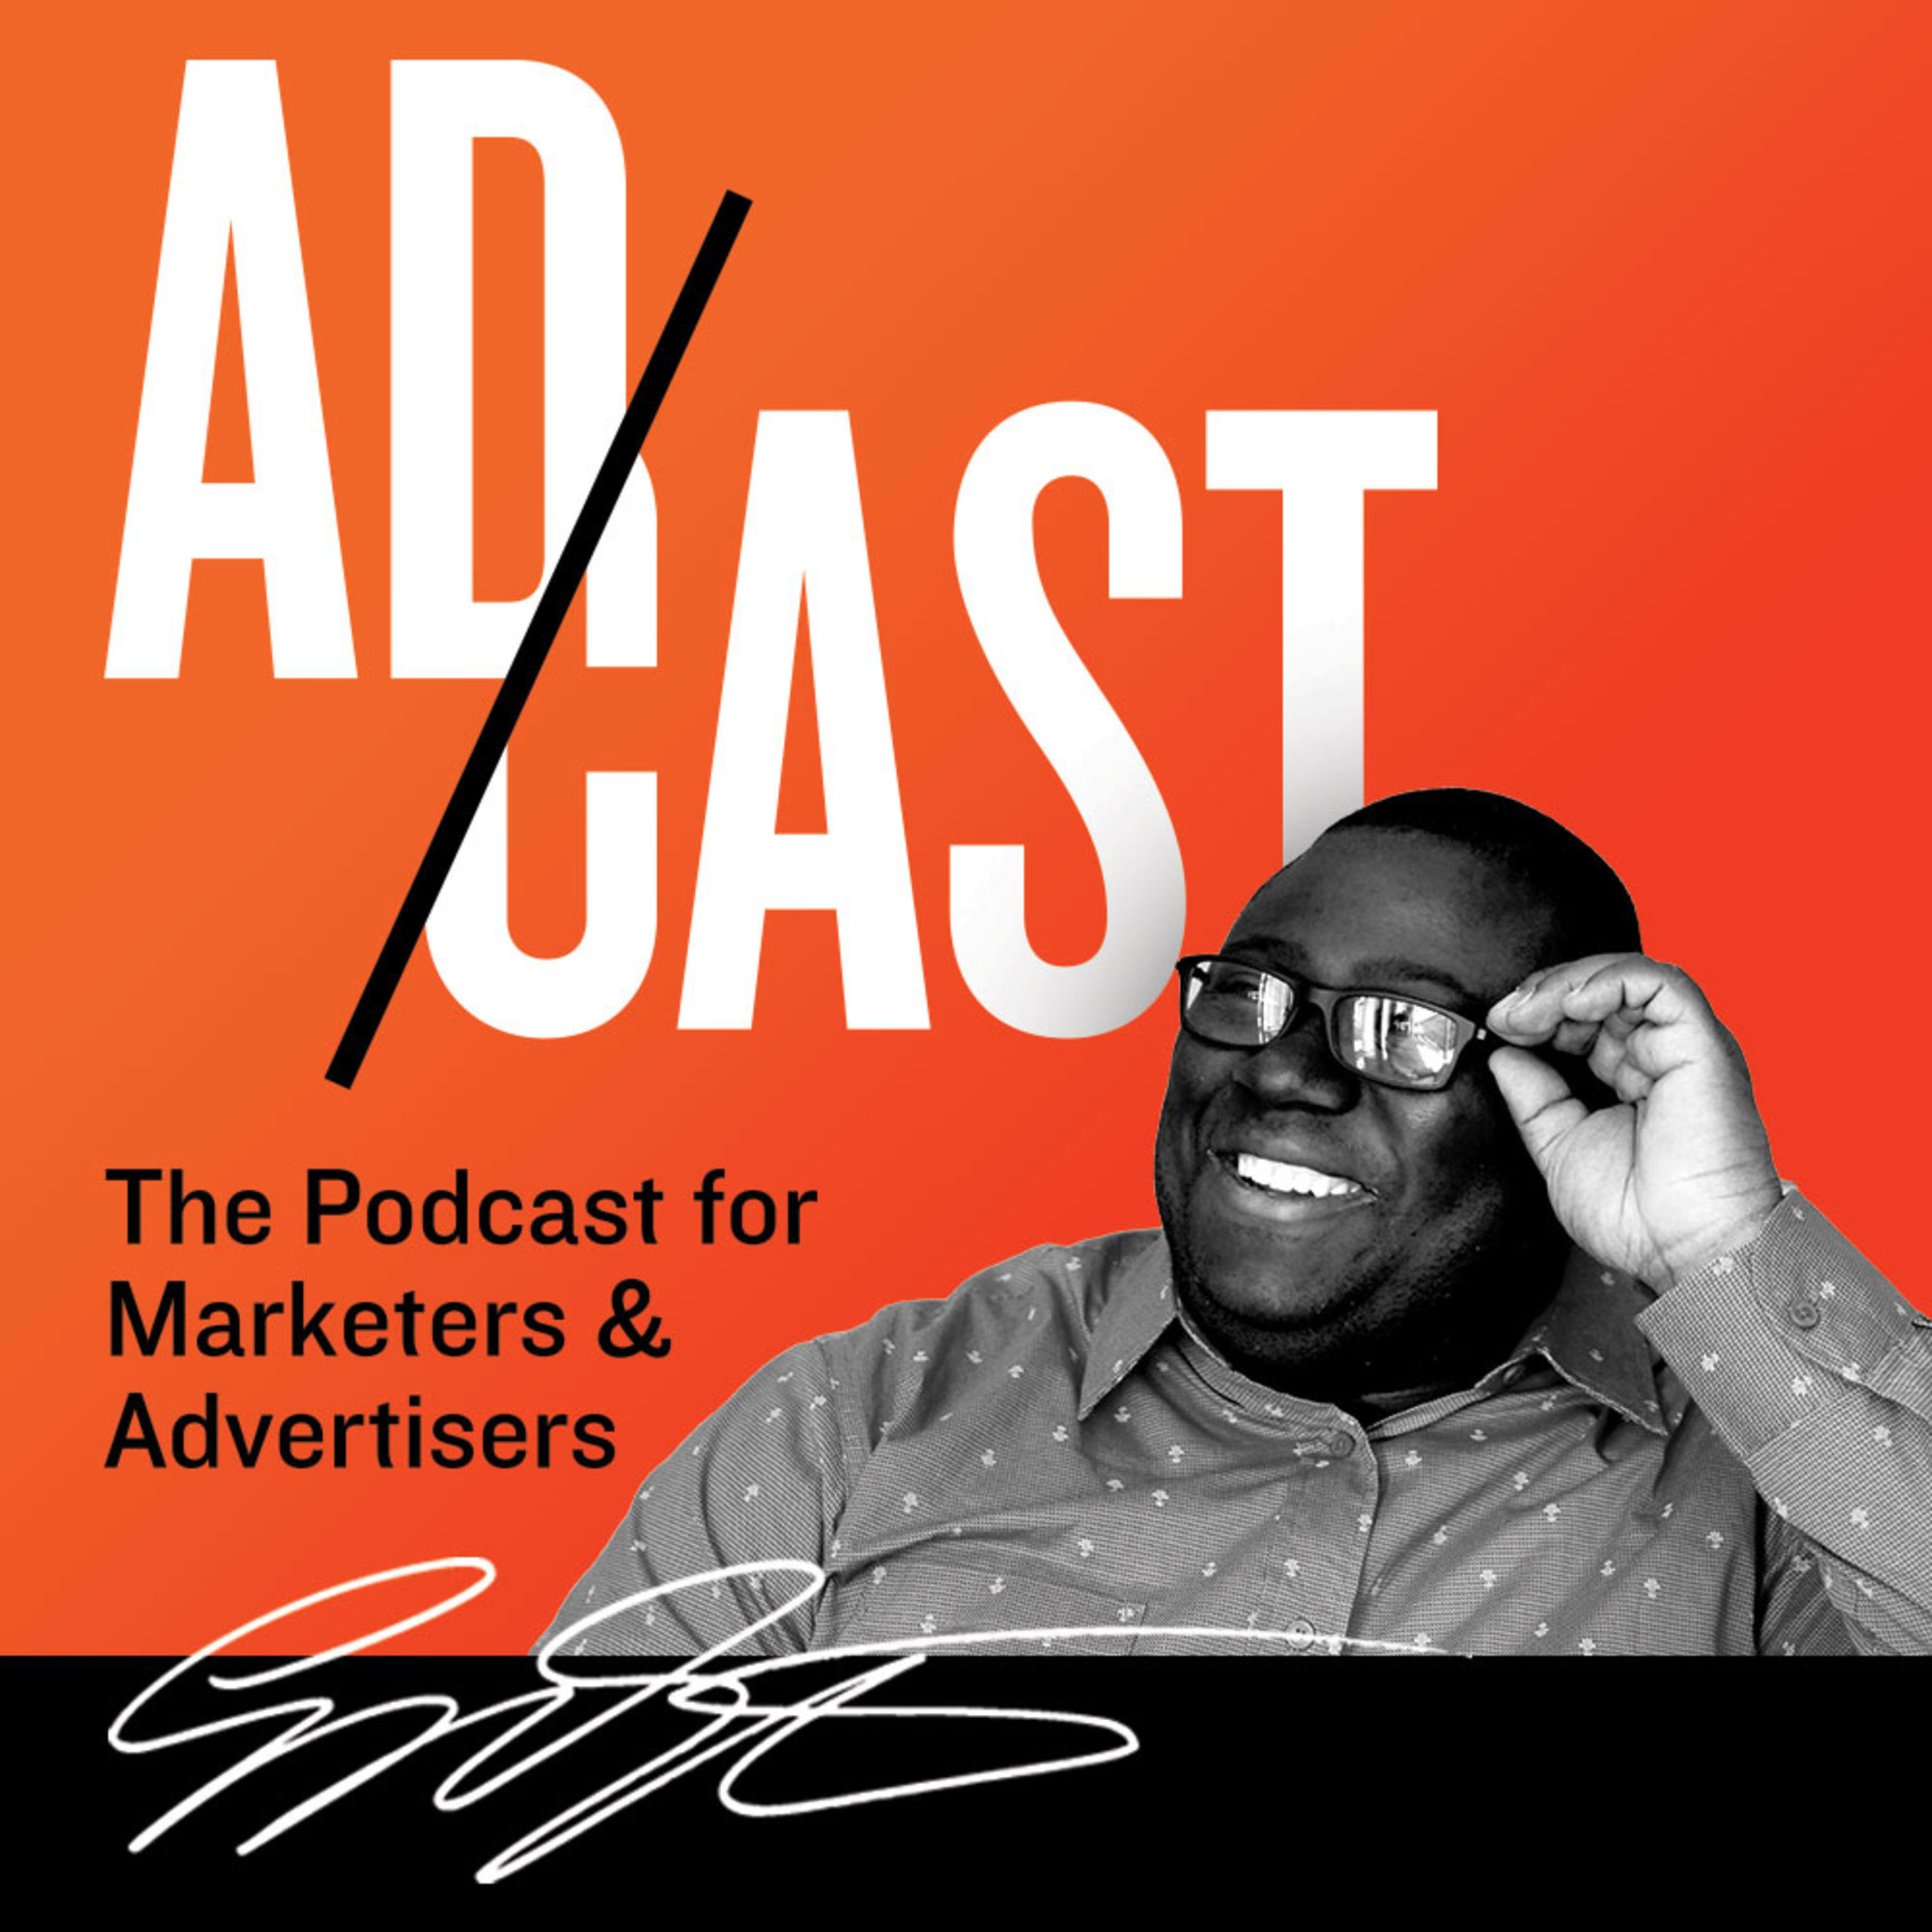 The Ad Cast